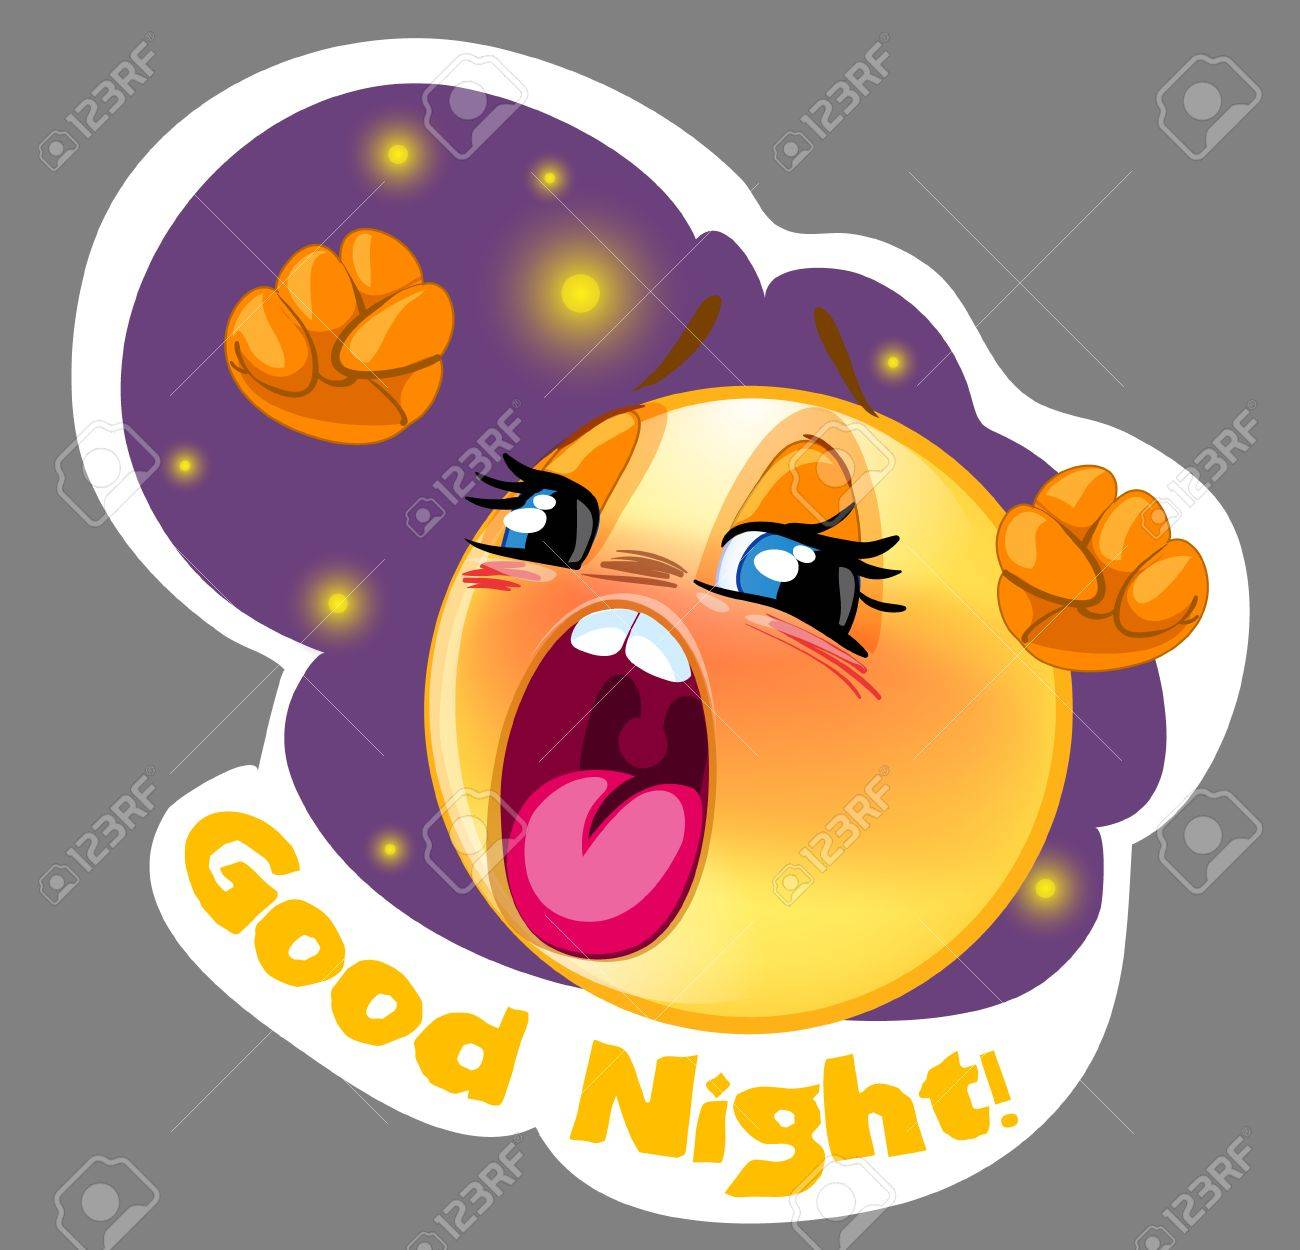 Vector sleepy smiley sticker with night background for messenger